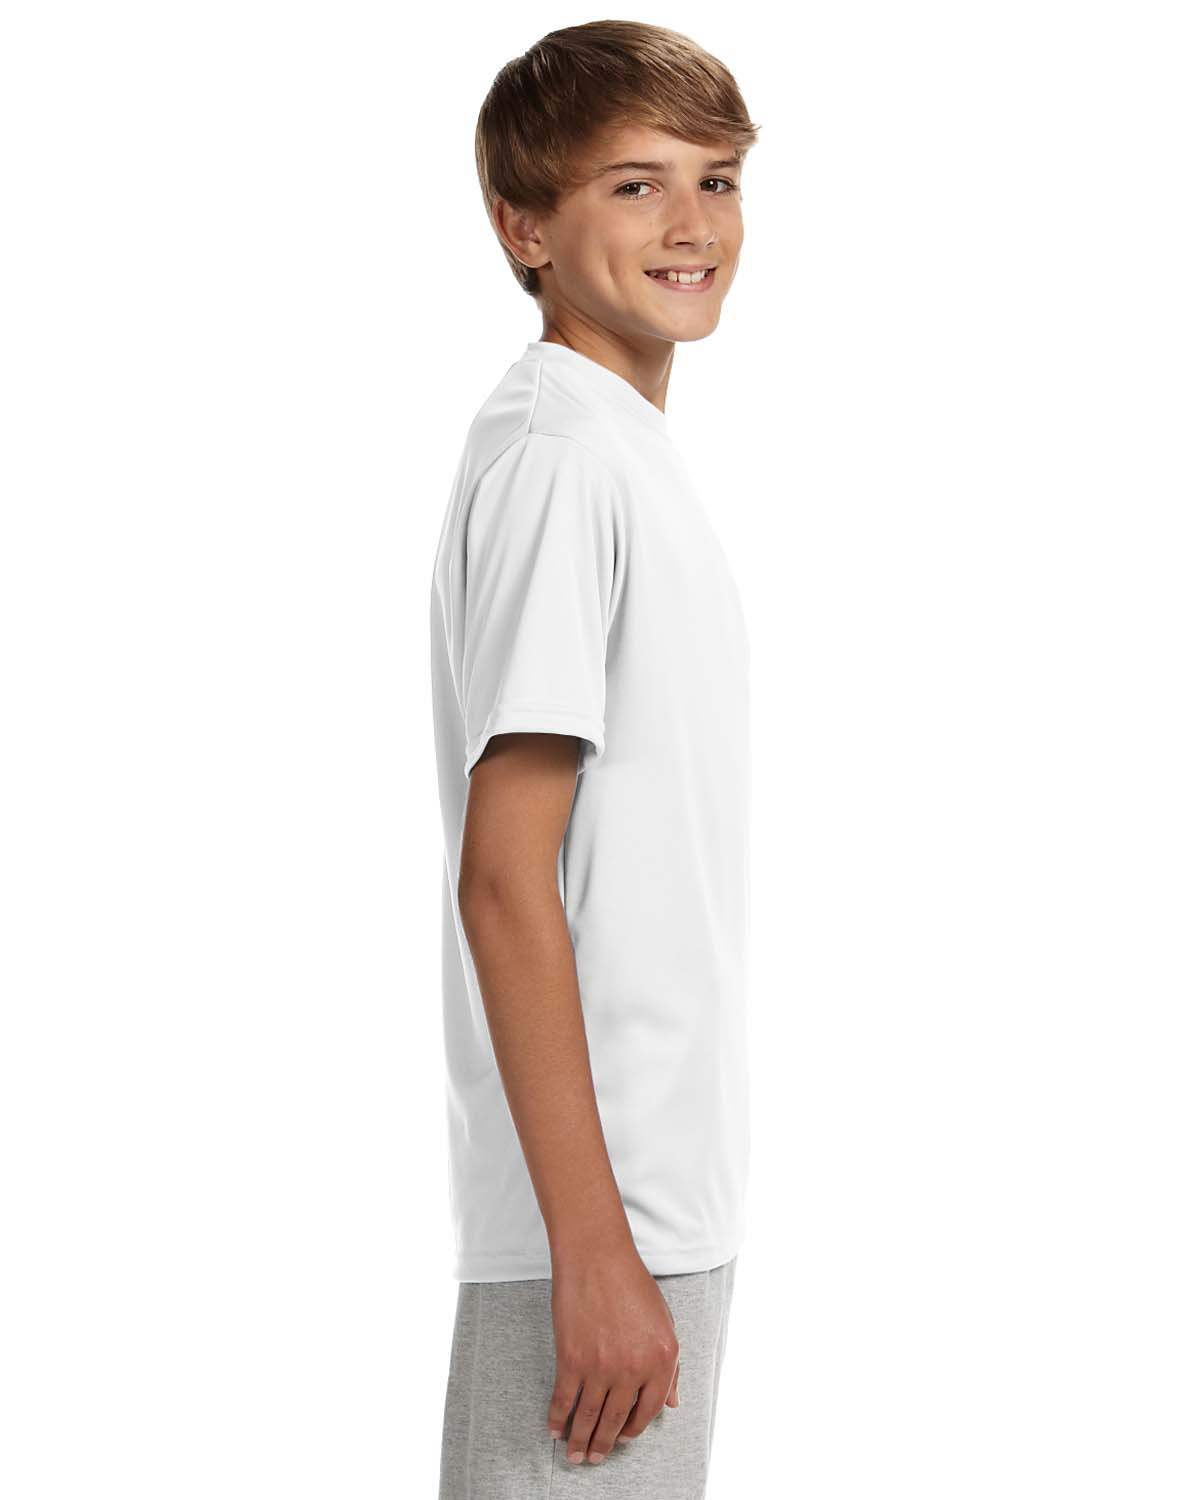 'A4 NB3142 Youth Cooling Performance Crew T-Shirt'